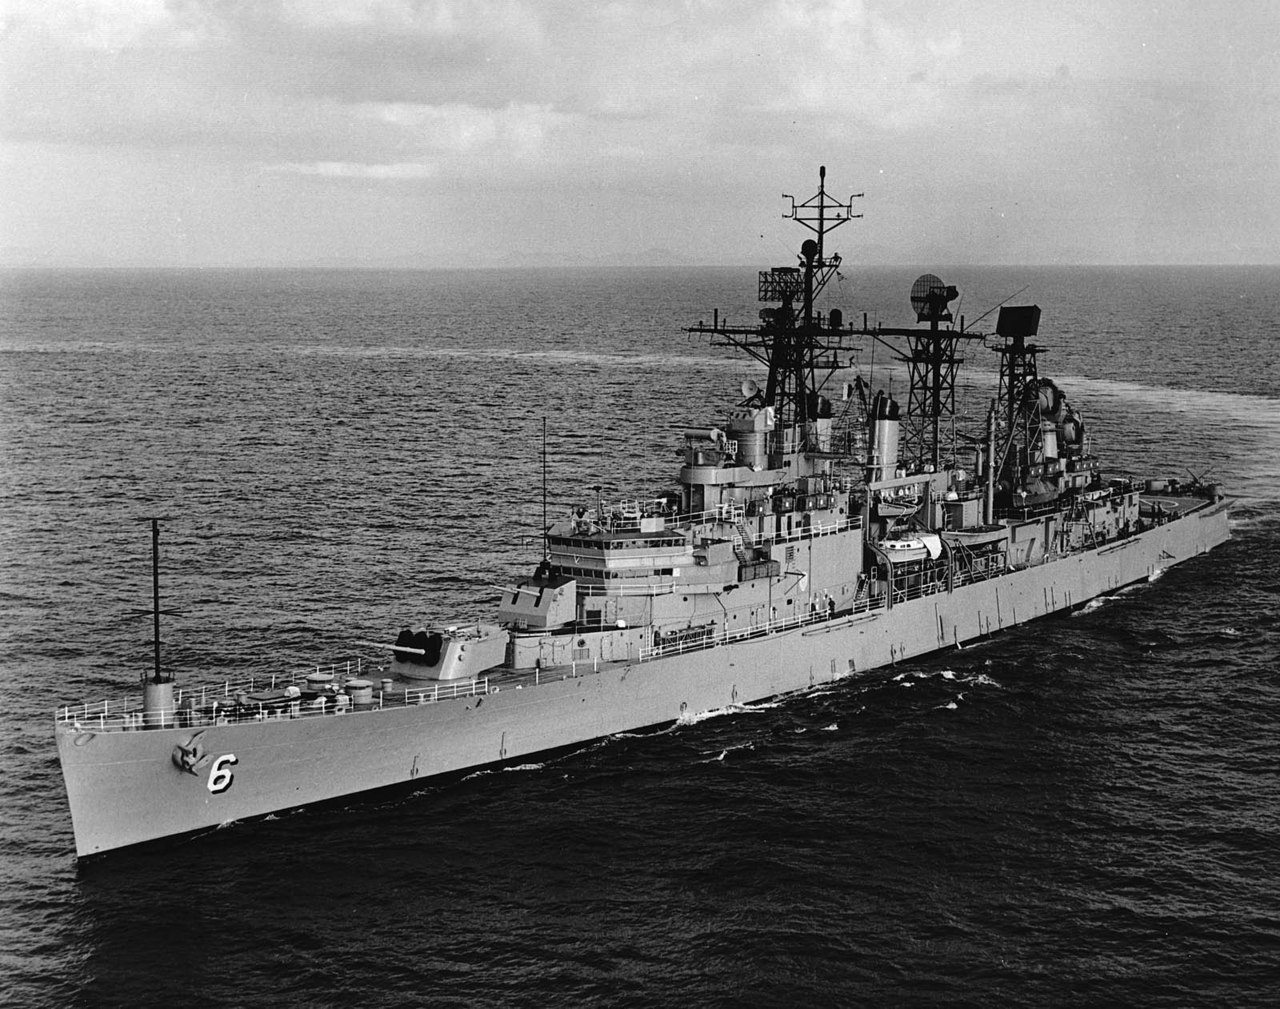 "USS Providence Veterans Recall Operation Lion's Den The Foundation has been busily occupied preparing the new exhibit ""Into the Lion's Den"" for the Cold War Gallery, and on Thursday, 3 May, we were reminded of the reason we strive to build such exhibits in the first place. The National Navy Museum and the Cold War Gallery were honored by a visit from approximately 60 members of the USS Providence (CL 82/CLG 6) reunion group. Amongst the group were two sailors who were on board Providence the night of the pitched battle in Haiphong Harbor: Gary Cheever and Ken Chambers. For those unfamiliar with the exhibit, it centers around a 1972 nighttime raid by four surface warships of the U.S. Navy deep into enemy waters. The ships successfully bombarded enemy shore positions, and with the assistance of A-7 Corsair II aircraft, fended off a counterattack by North Vietnamese torpedo boats. (read the full story here)"